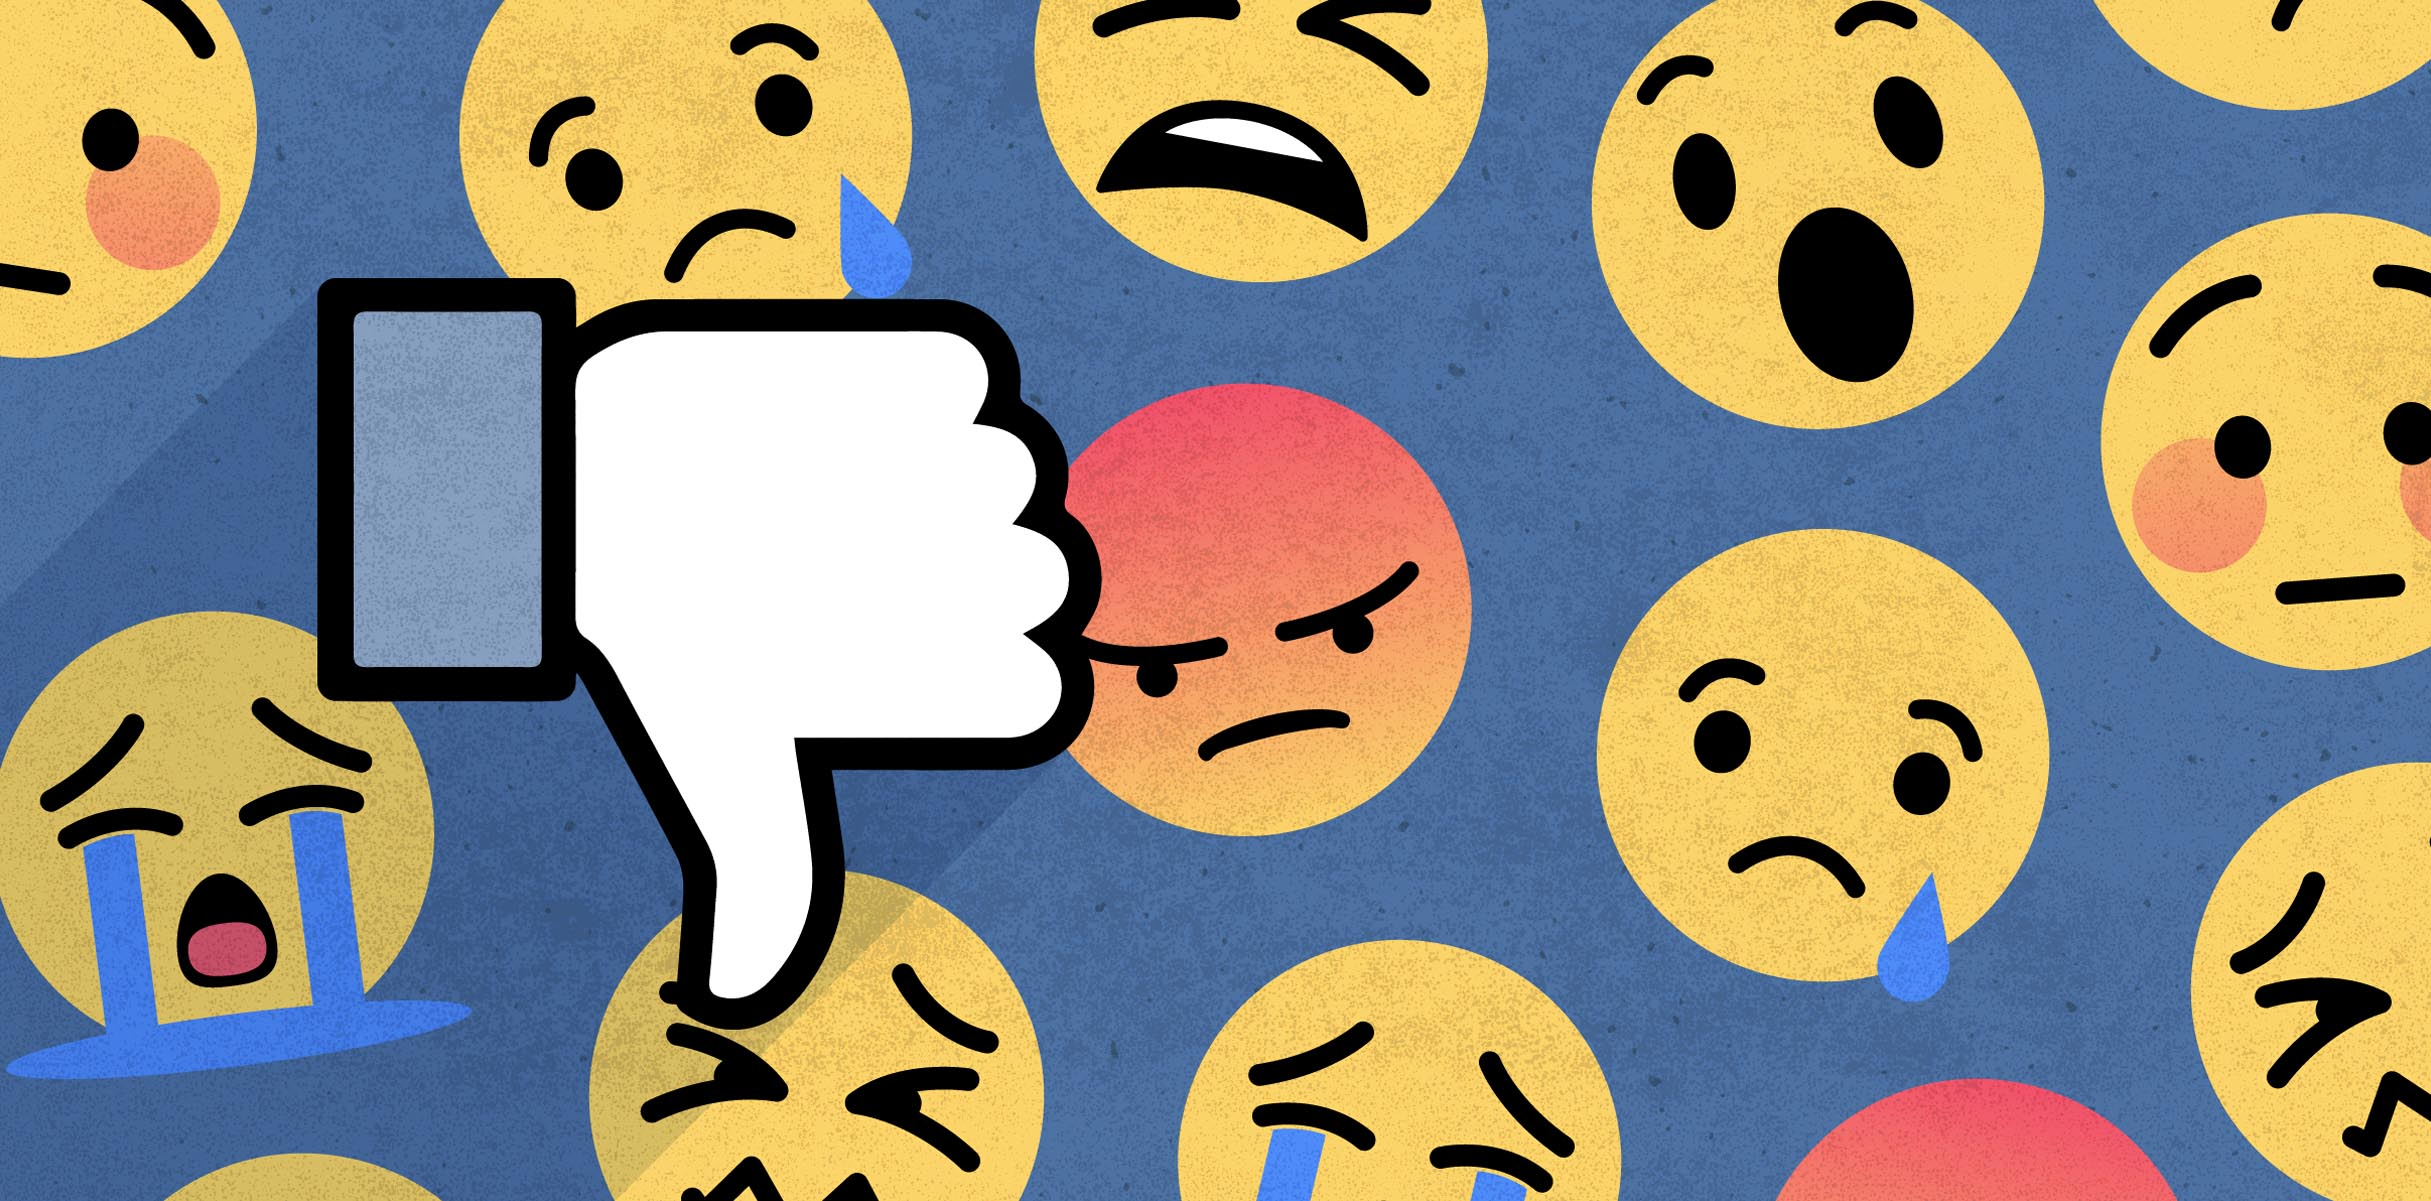 Image of facebook thumbdown hand overlaid on sad, angry, and scared emoji icons.